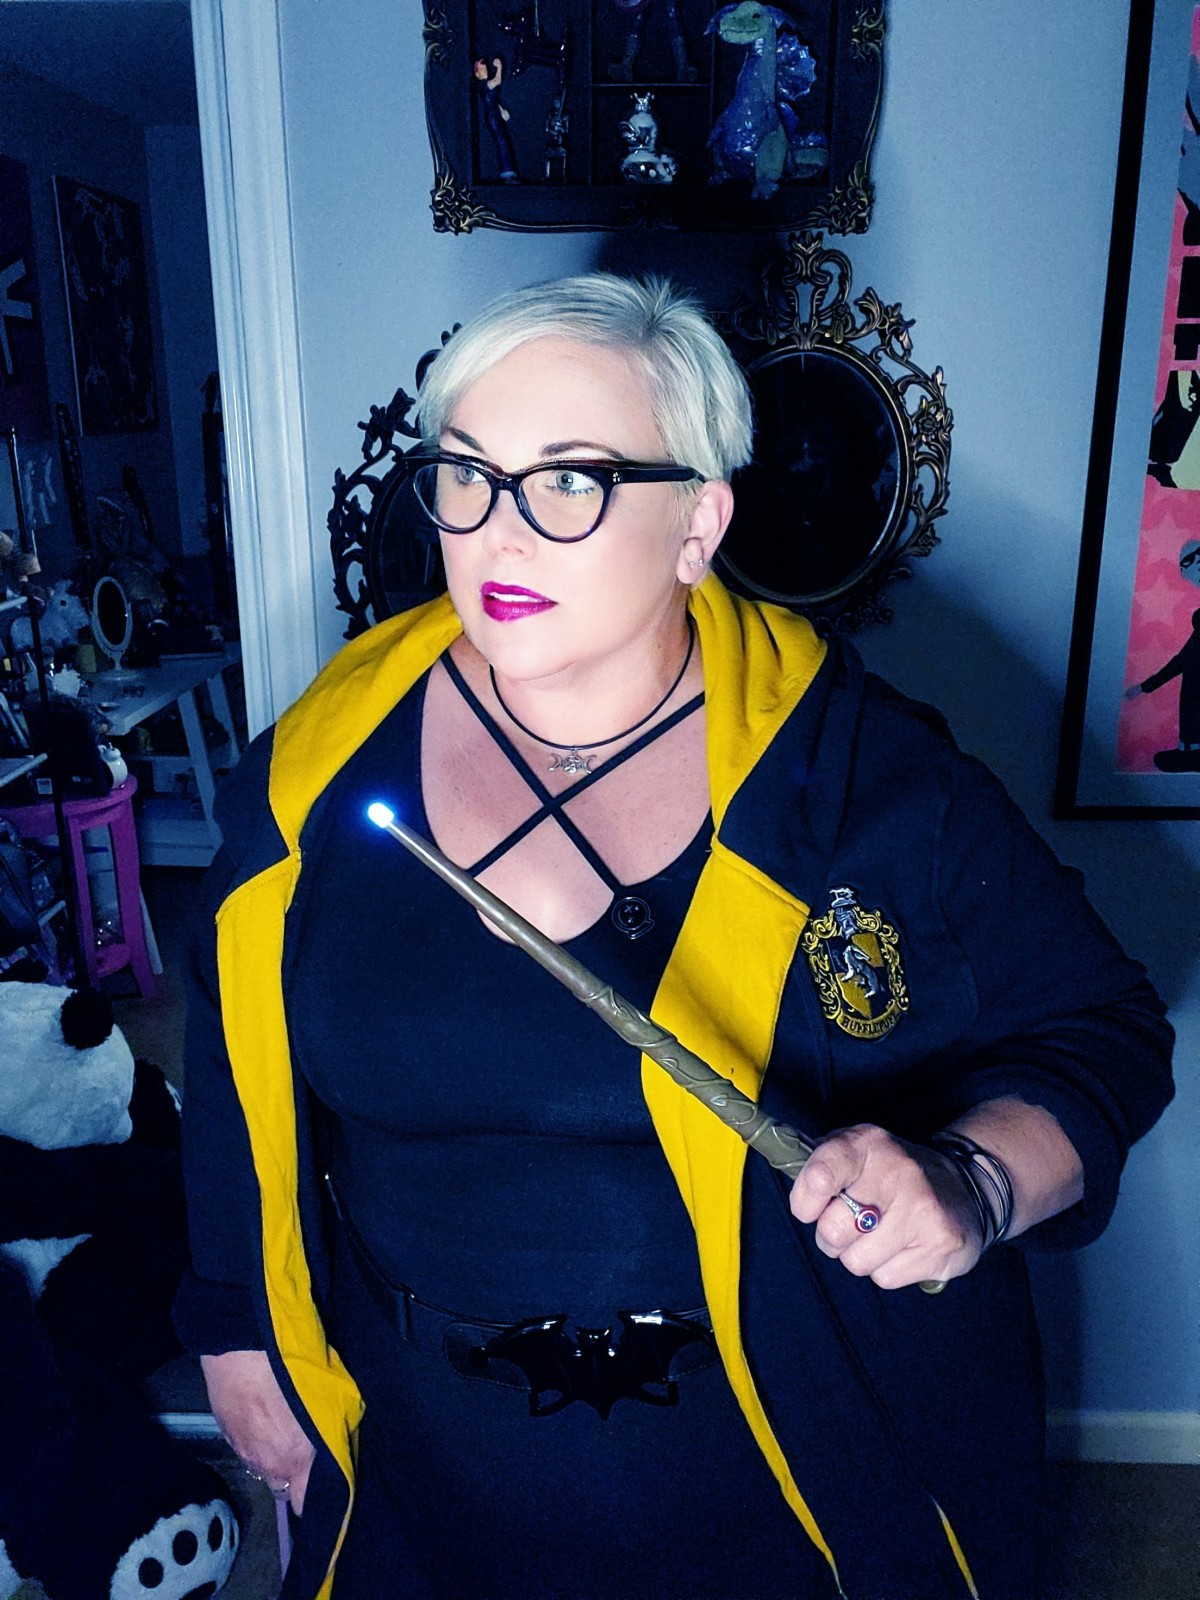 Outfit of the Day: Hogwarts House Robes by Our Universe